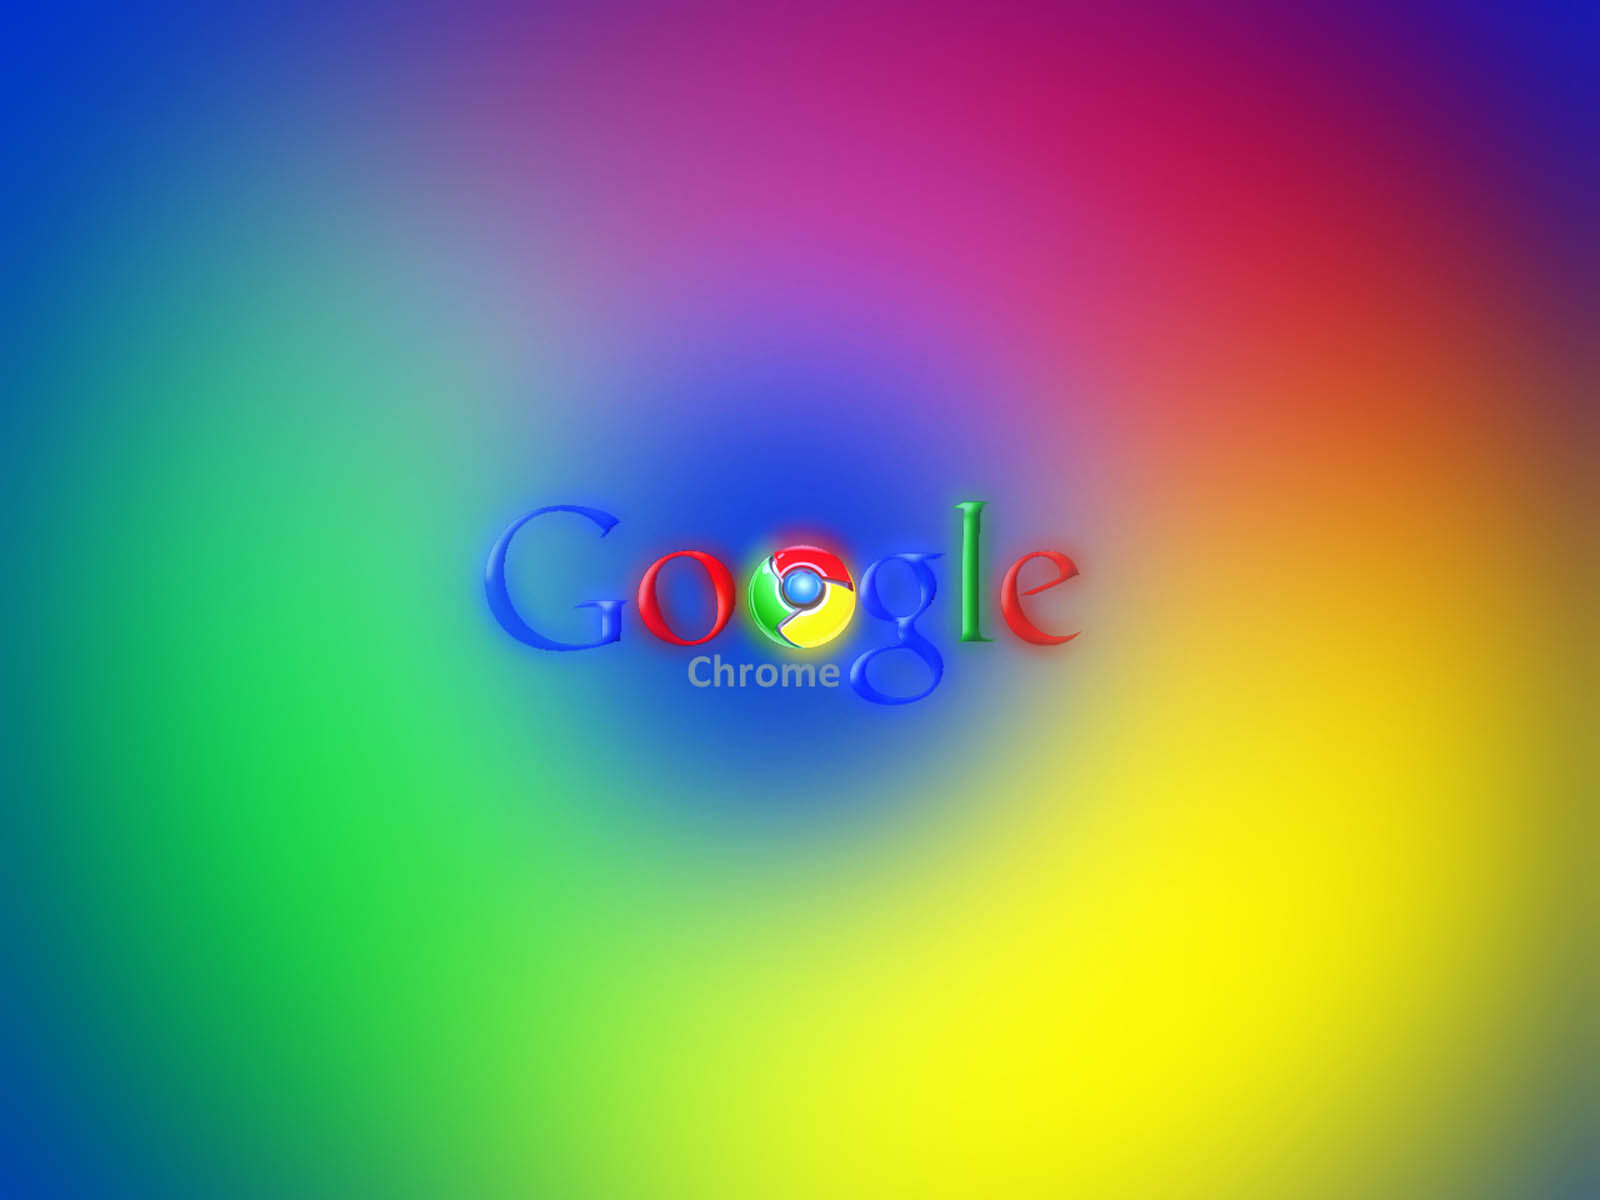 wallpaper google chrome wallpapers